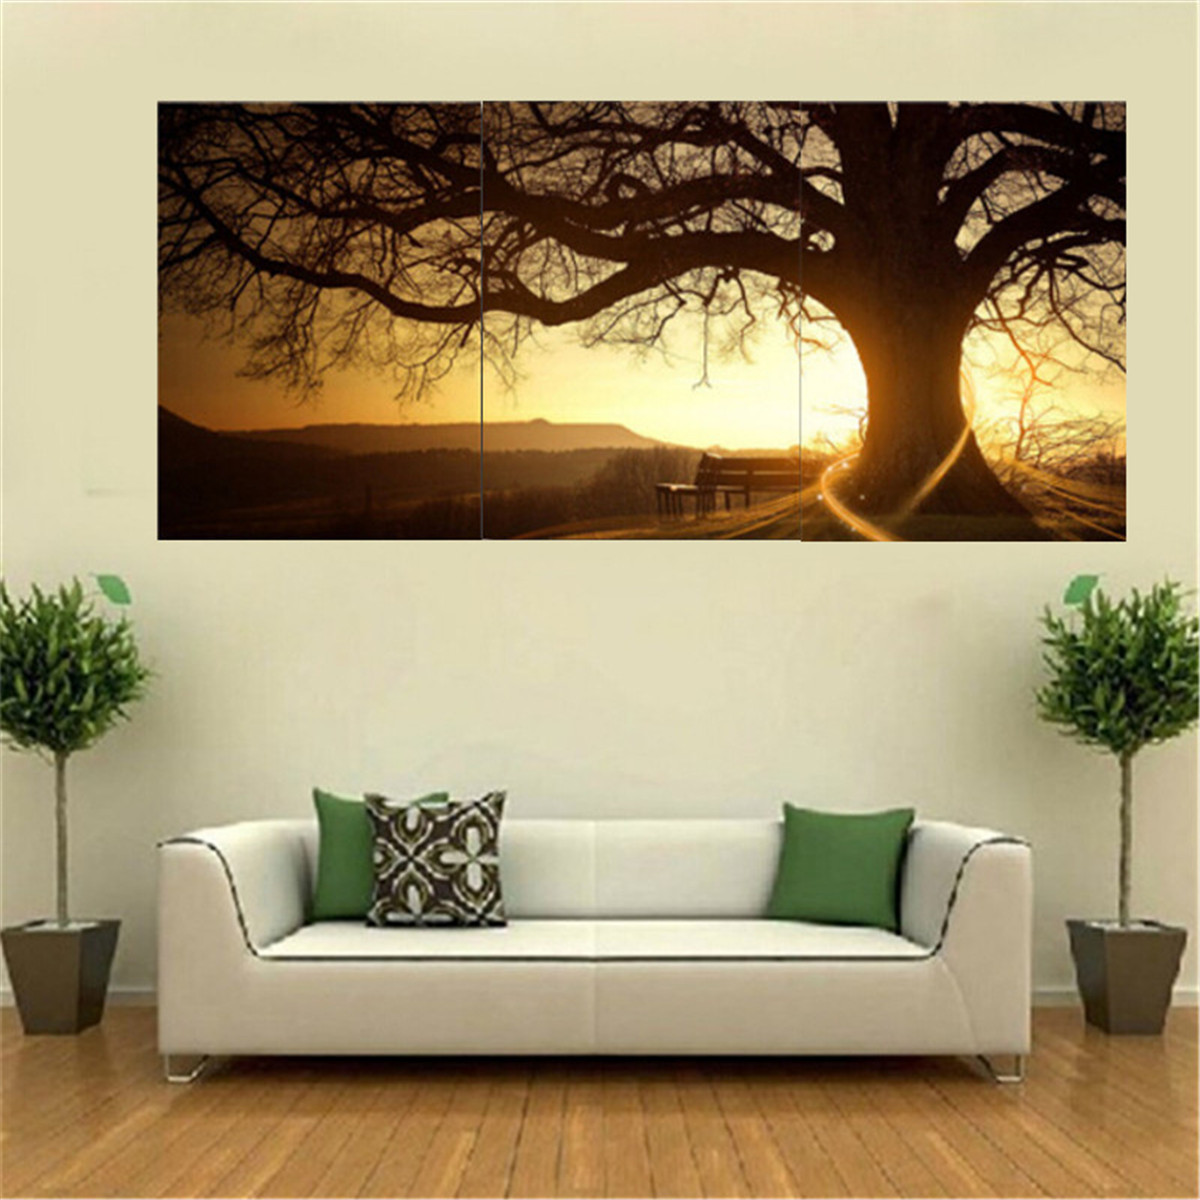 Home Decor Paintings 3pcs Sunset Combination Painting Printed On Canvas